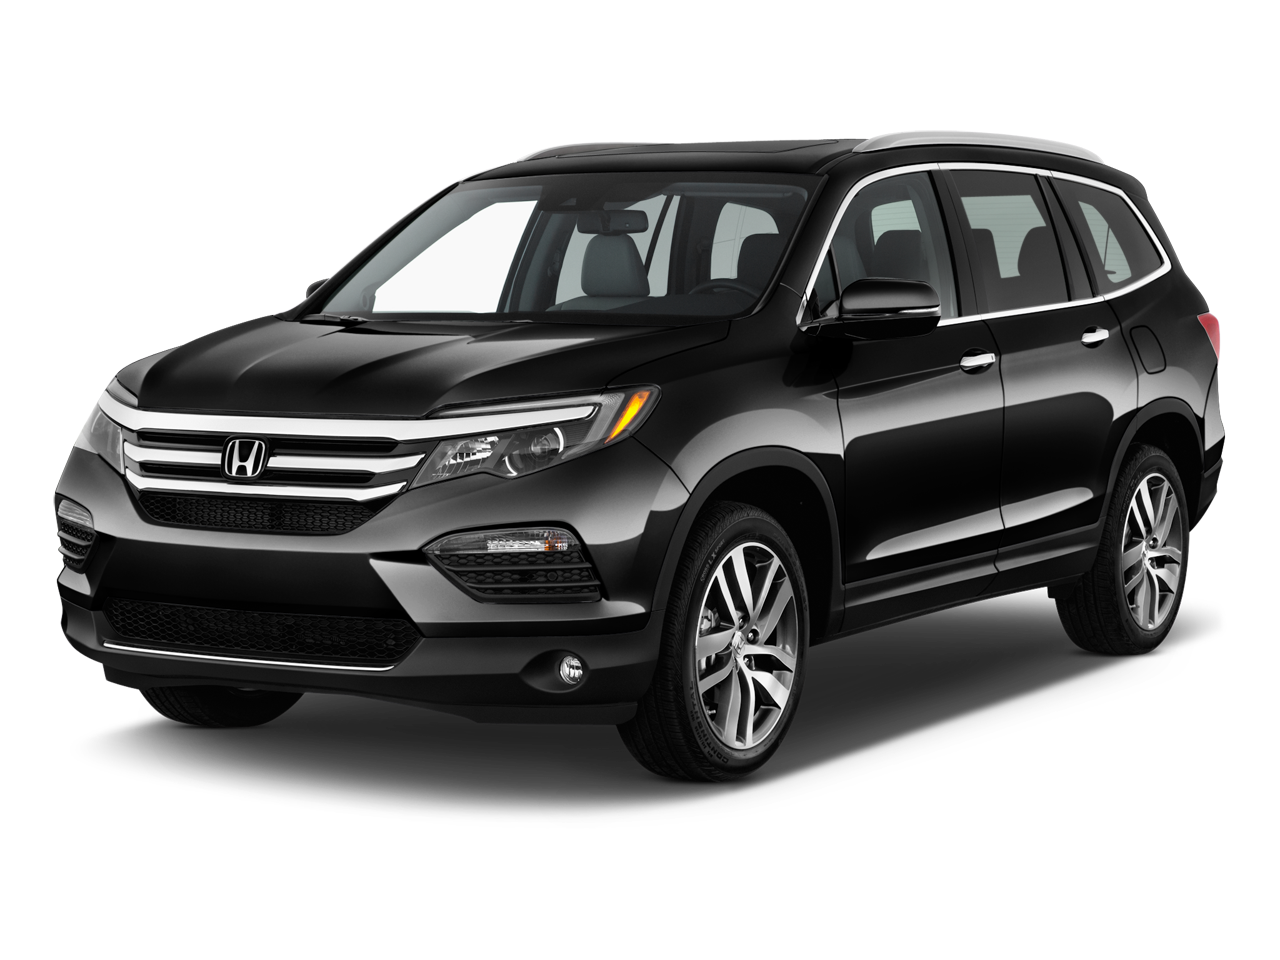 New 2017 honda pilot elite near capitol heights md for Black honda pilot